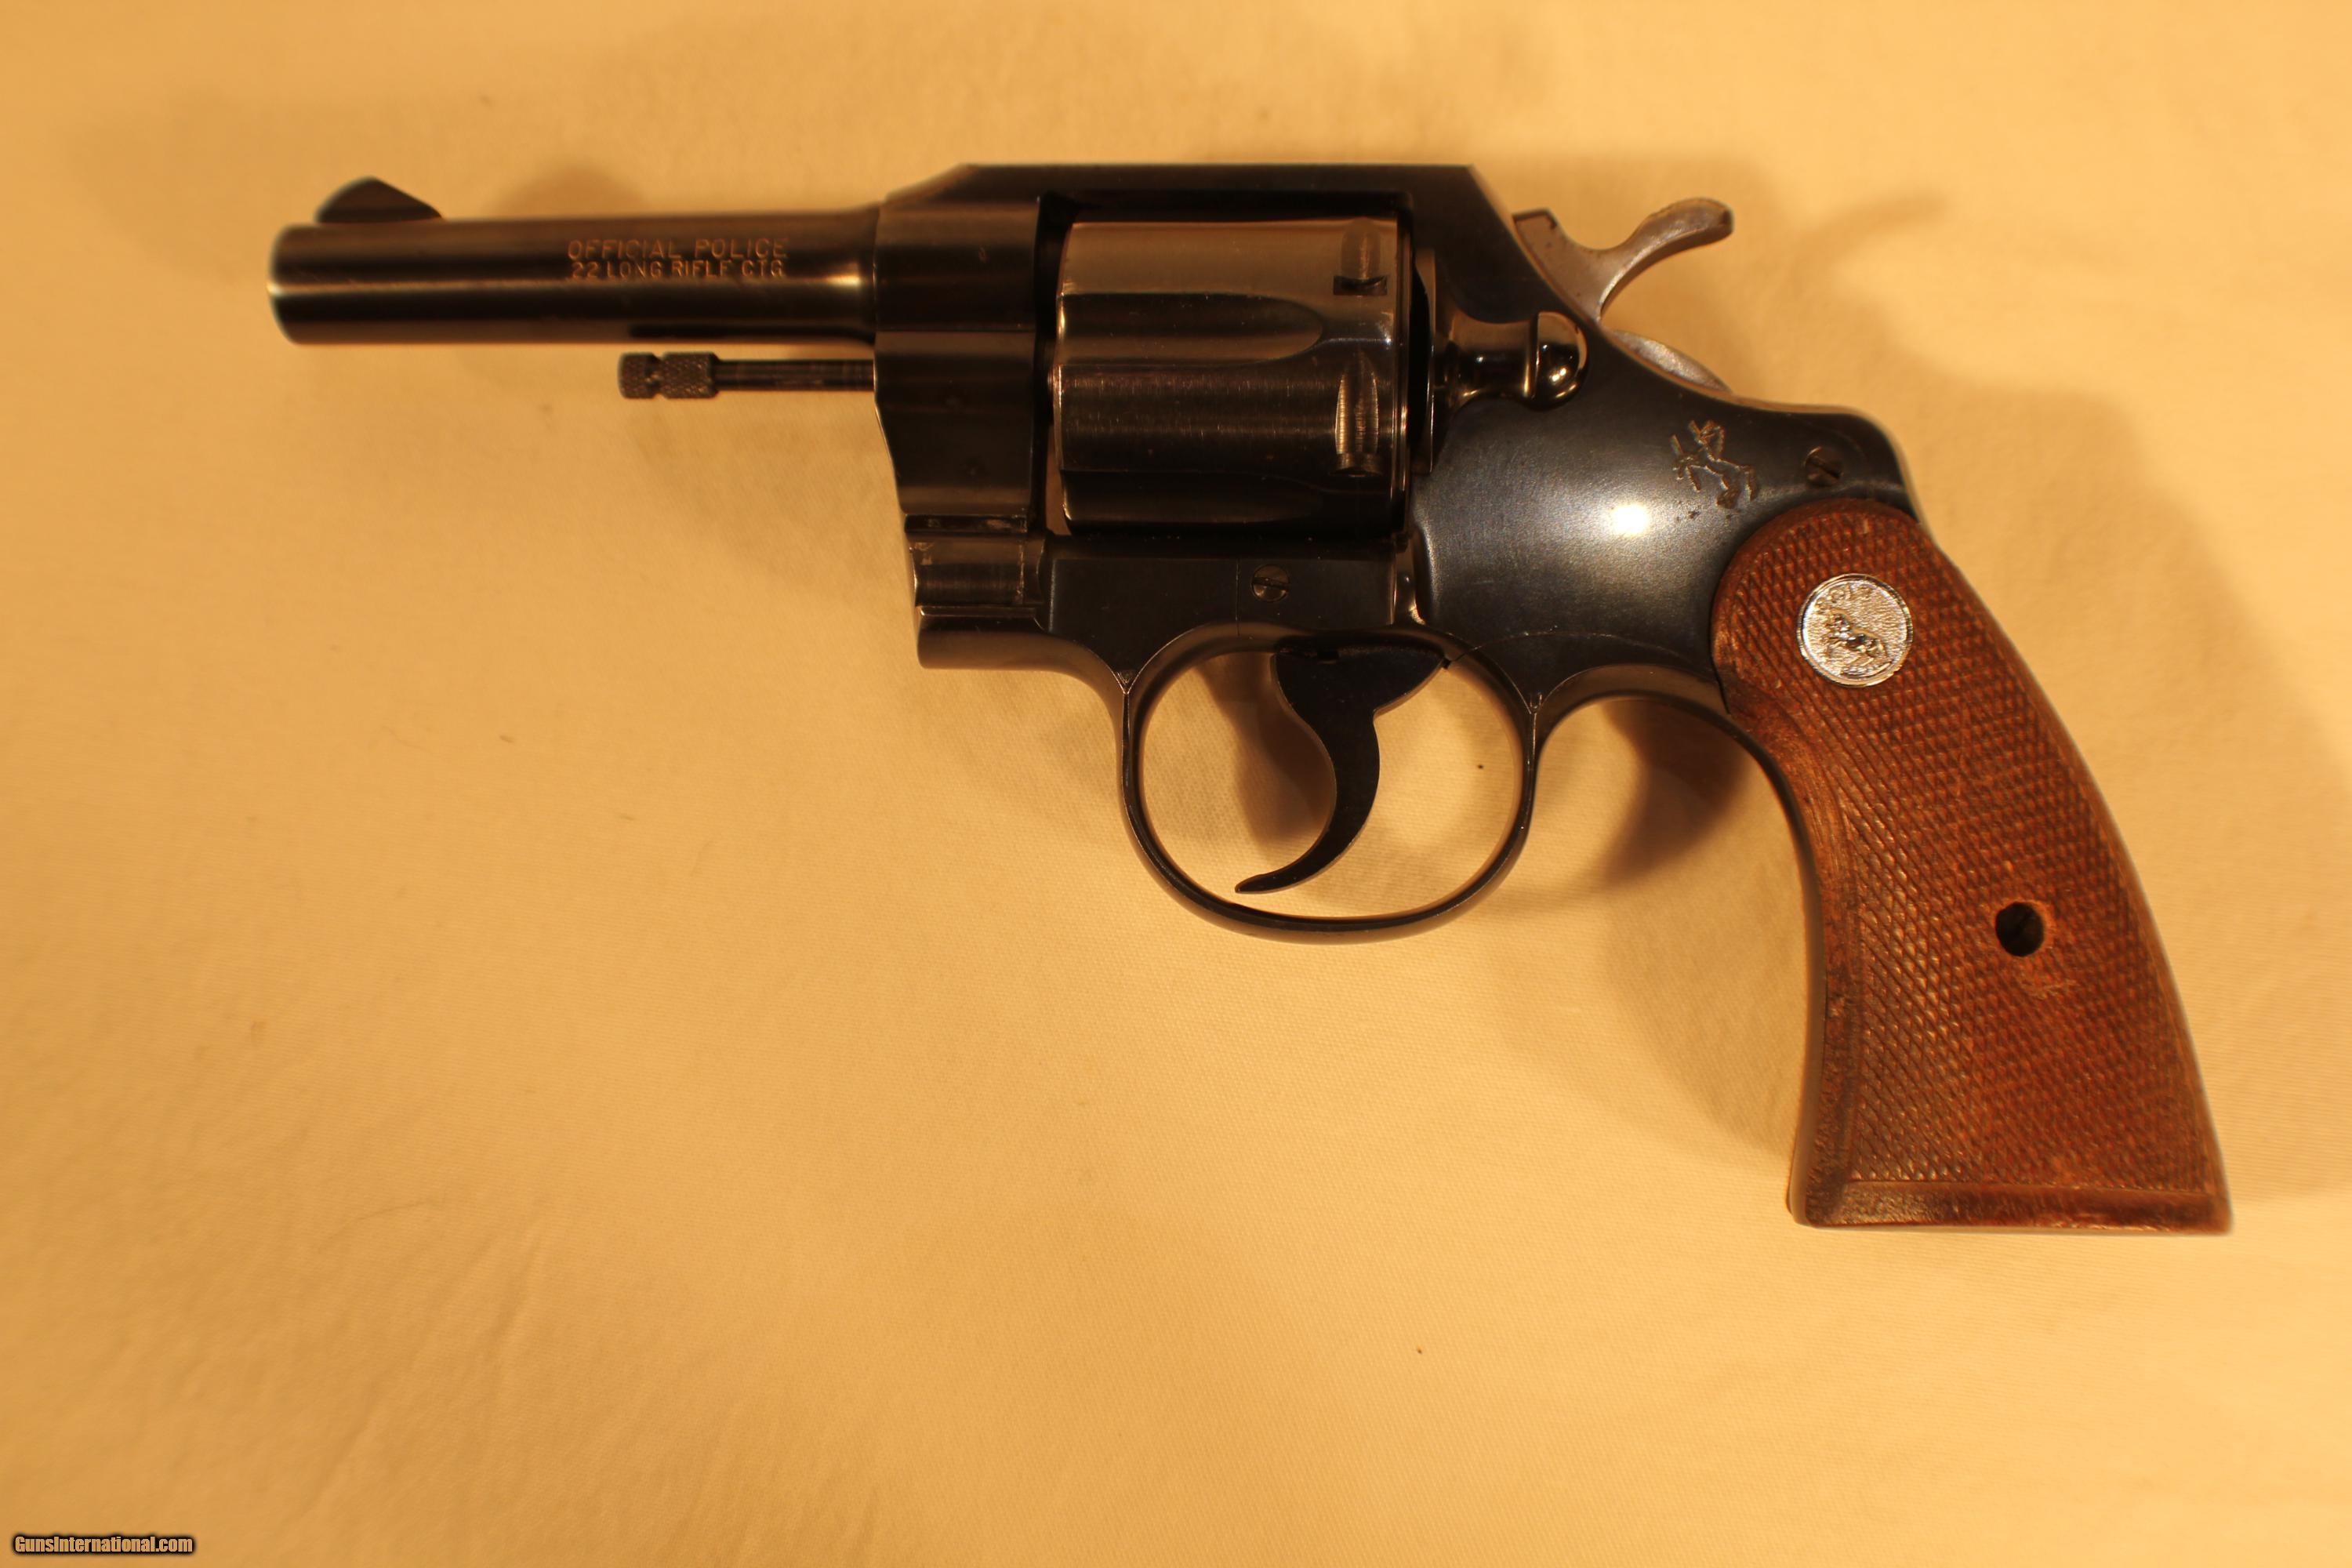 colt single men over 50 Browse a huge inventory of colt firearms for sale at cabela's, including the legendary colt 45, other colt pistols, colt revolvers, colt rifles and more.